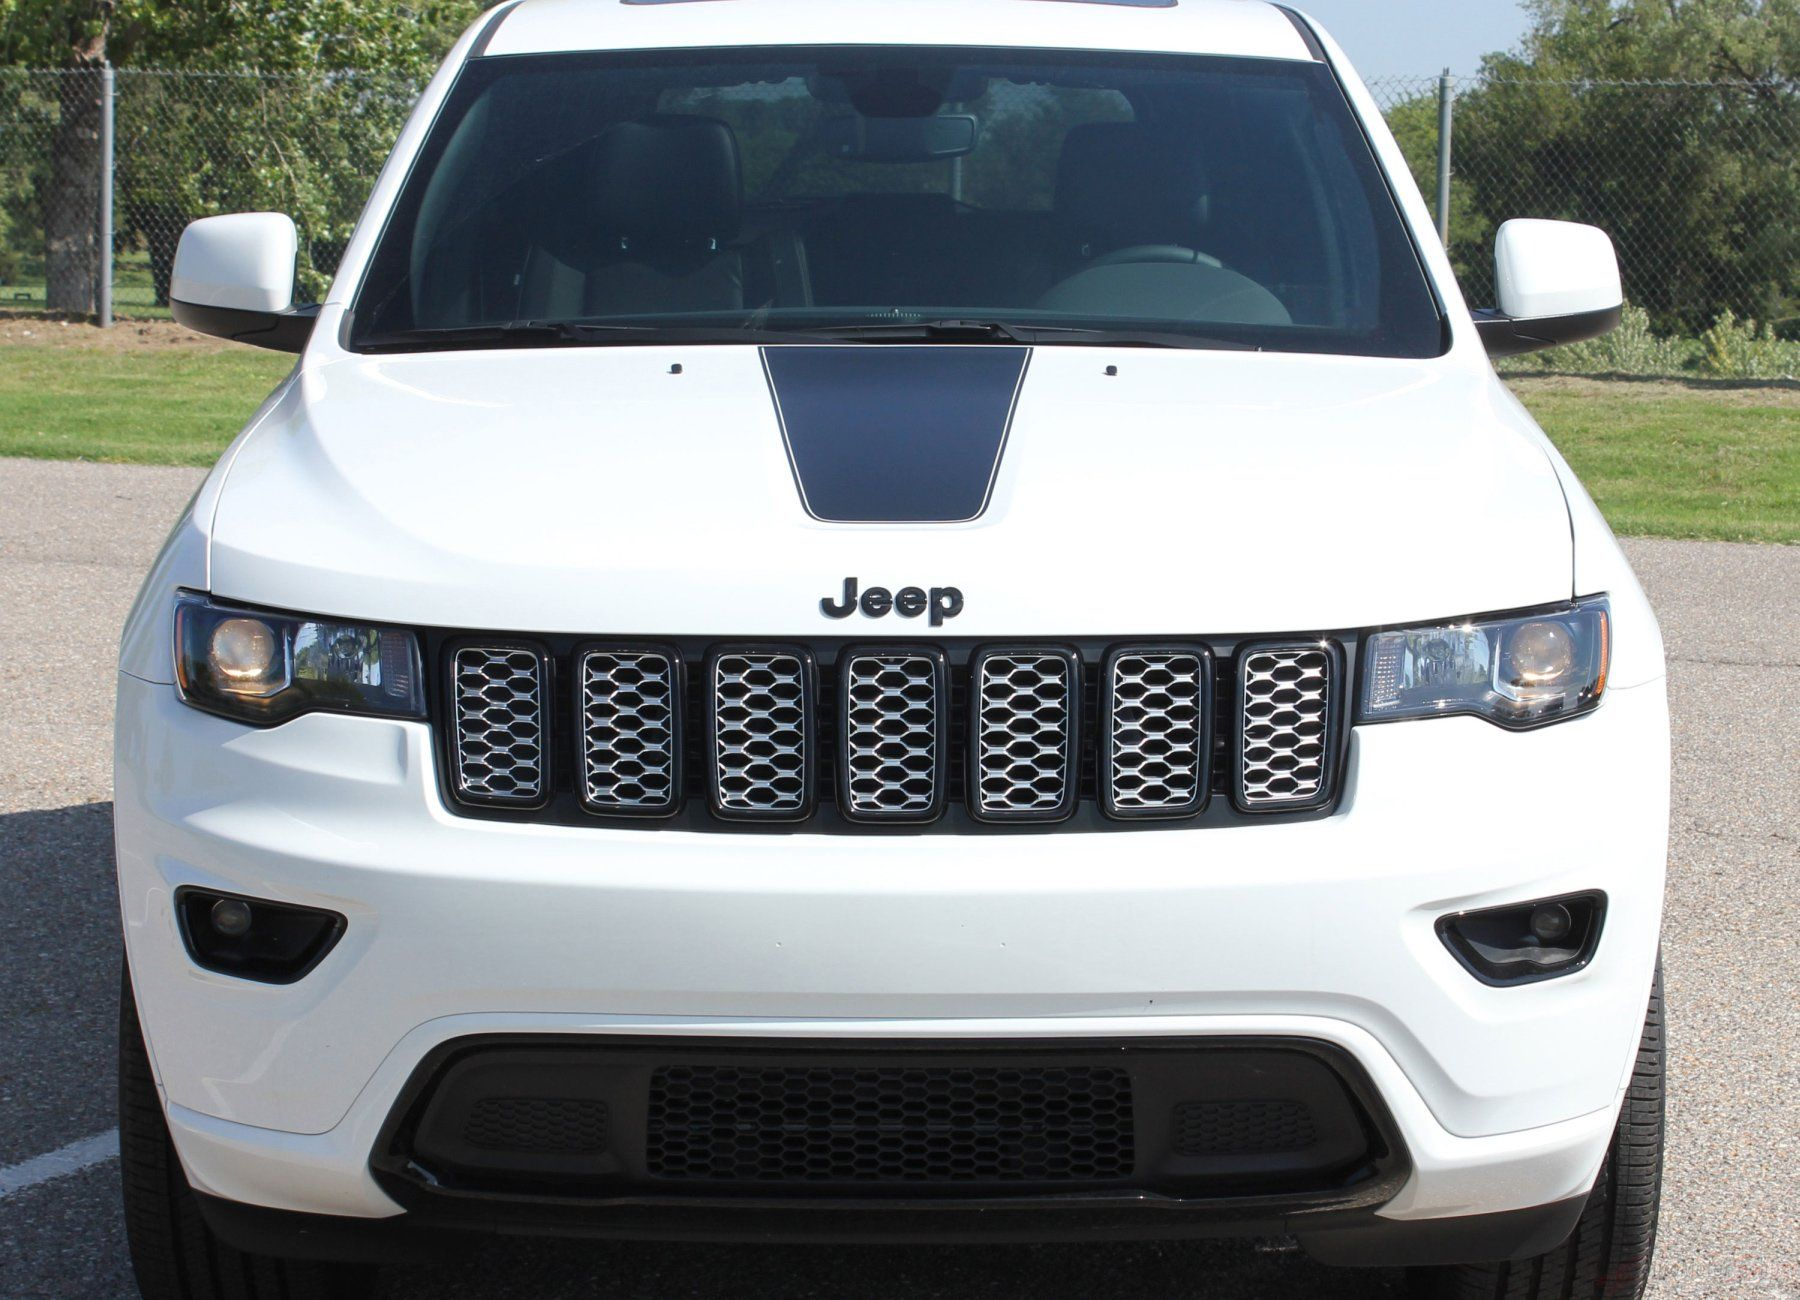 2011 2020 Jeep Grand Cherokee Hood Decal Pathway Center Blackout Vinyl Graphic Stripes Jeep Grand Cherokee Jeep Cherokee Accessories Jeep Grand